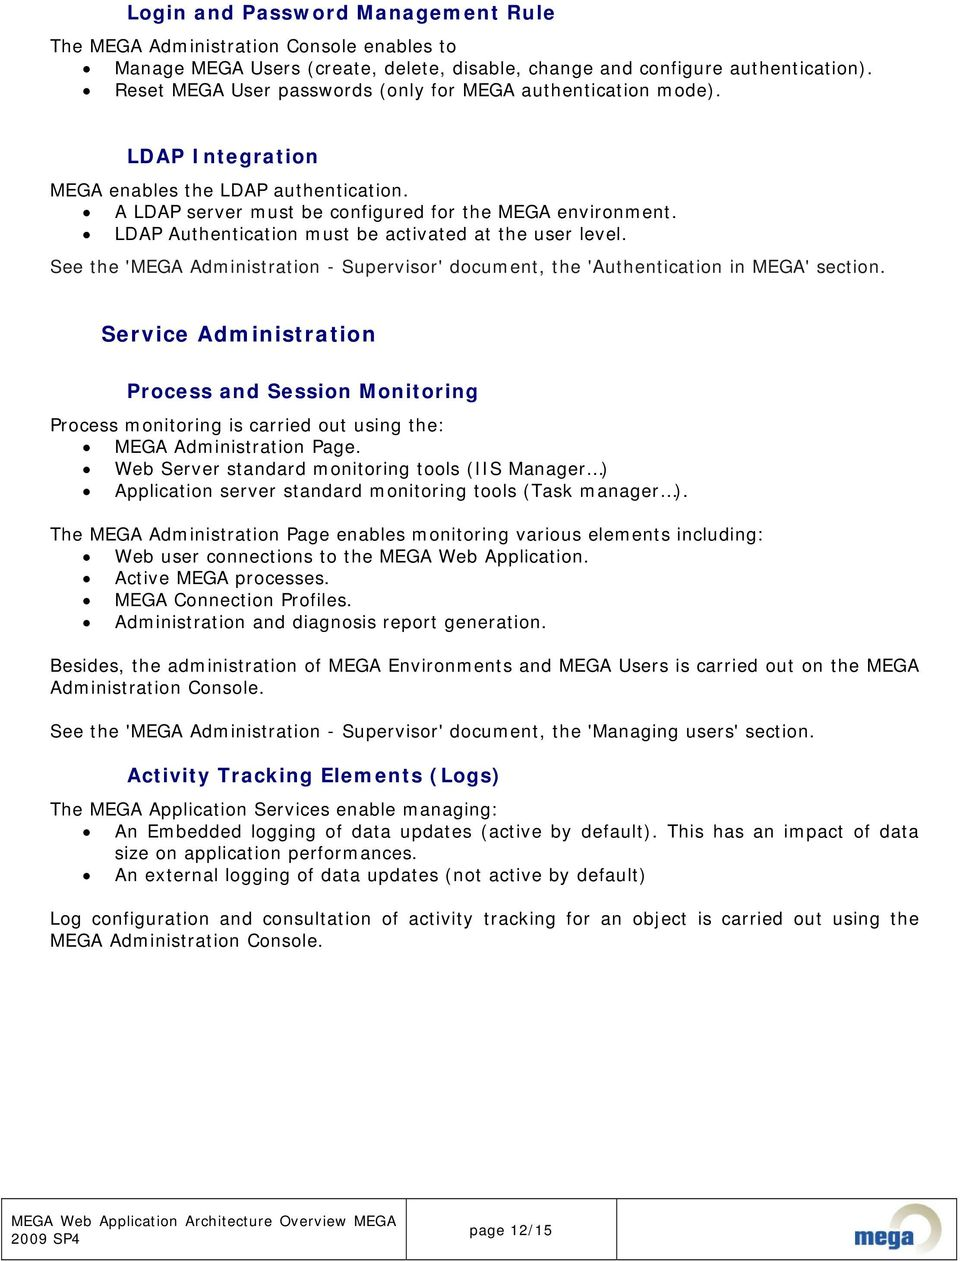 LDAP Authentication must be activated at the user level. See the 'MEGA Administration - Supervisor' document, the 'Authentication in MEGA' section.